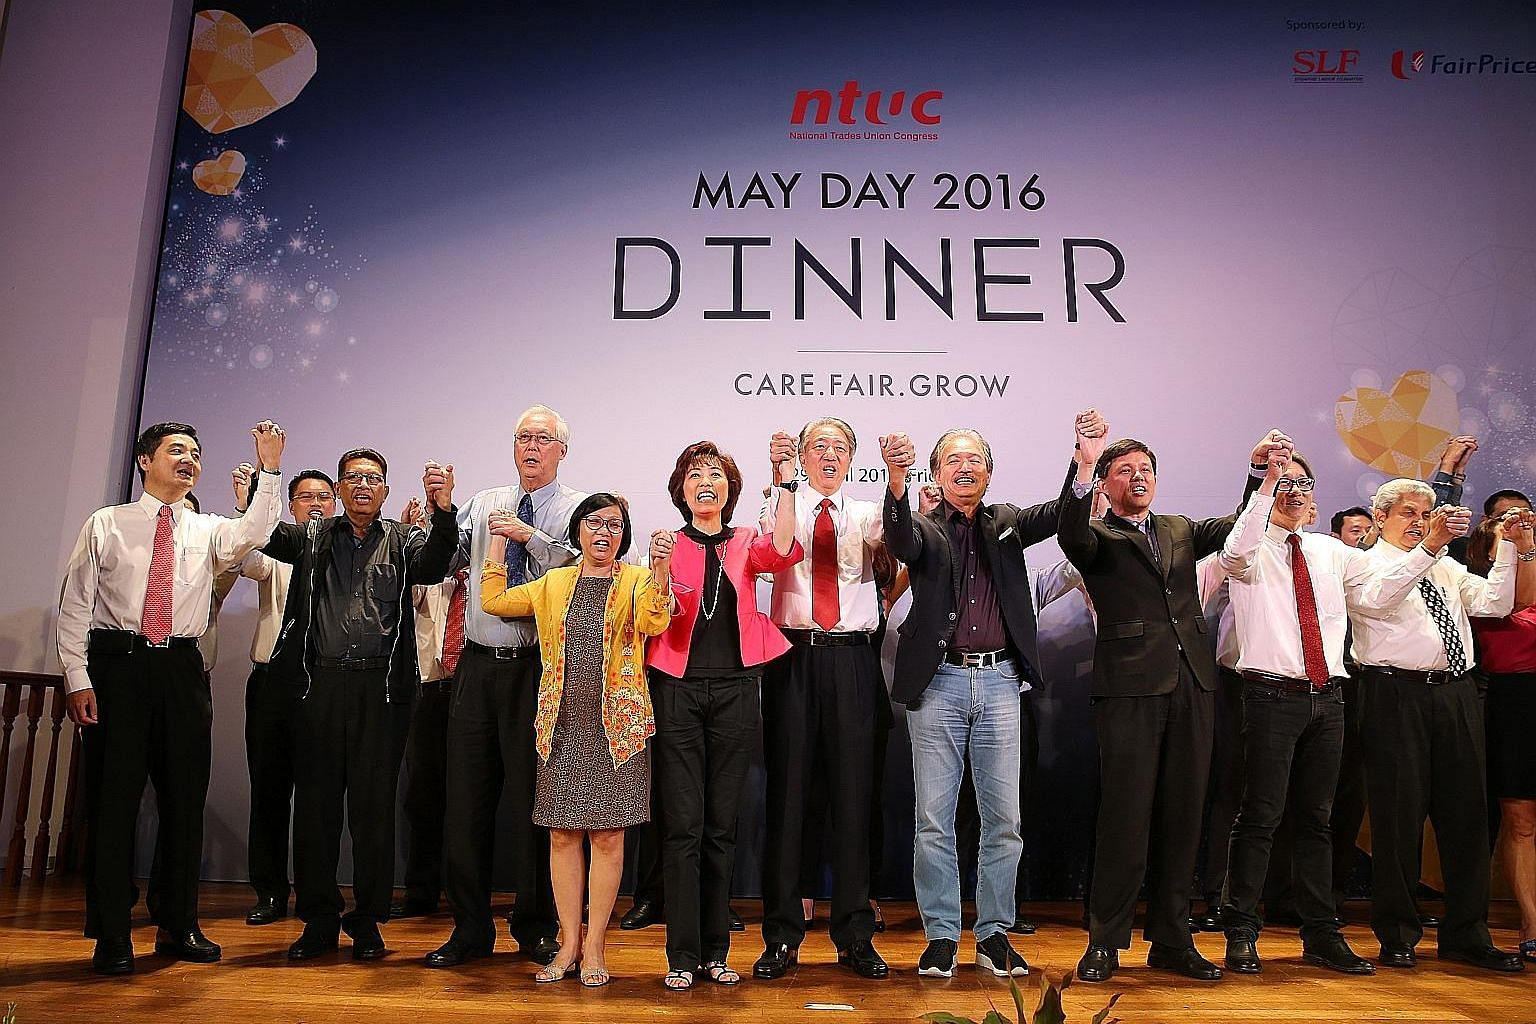 NTUC central committee members singing with (front row, from left) NTUC deputy secretary-general Heng Chee How, NTUC president emeritus John De Payva, Emeritus Senior Minister Goh Chok Tong, NTUC's first woman president Diana Chia, NTUC president Mar